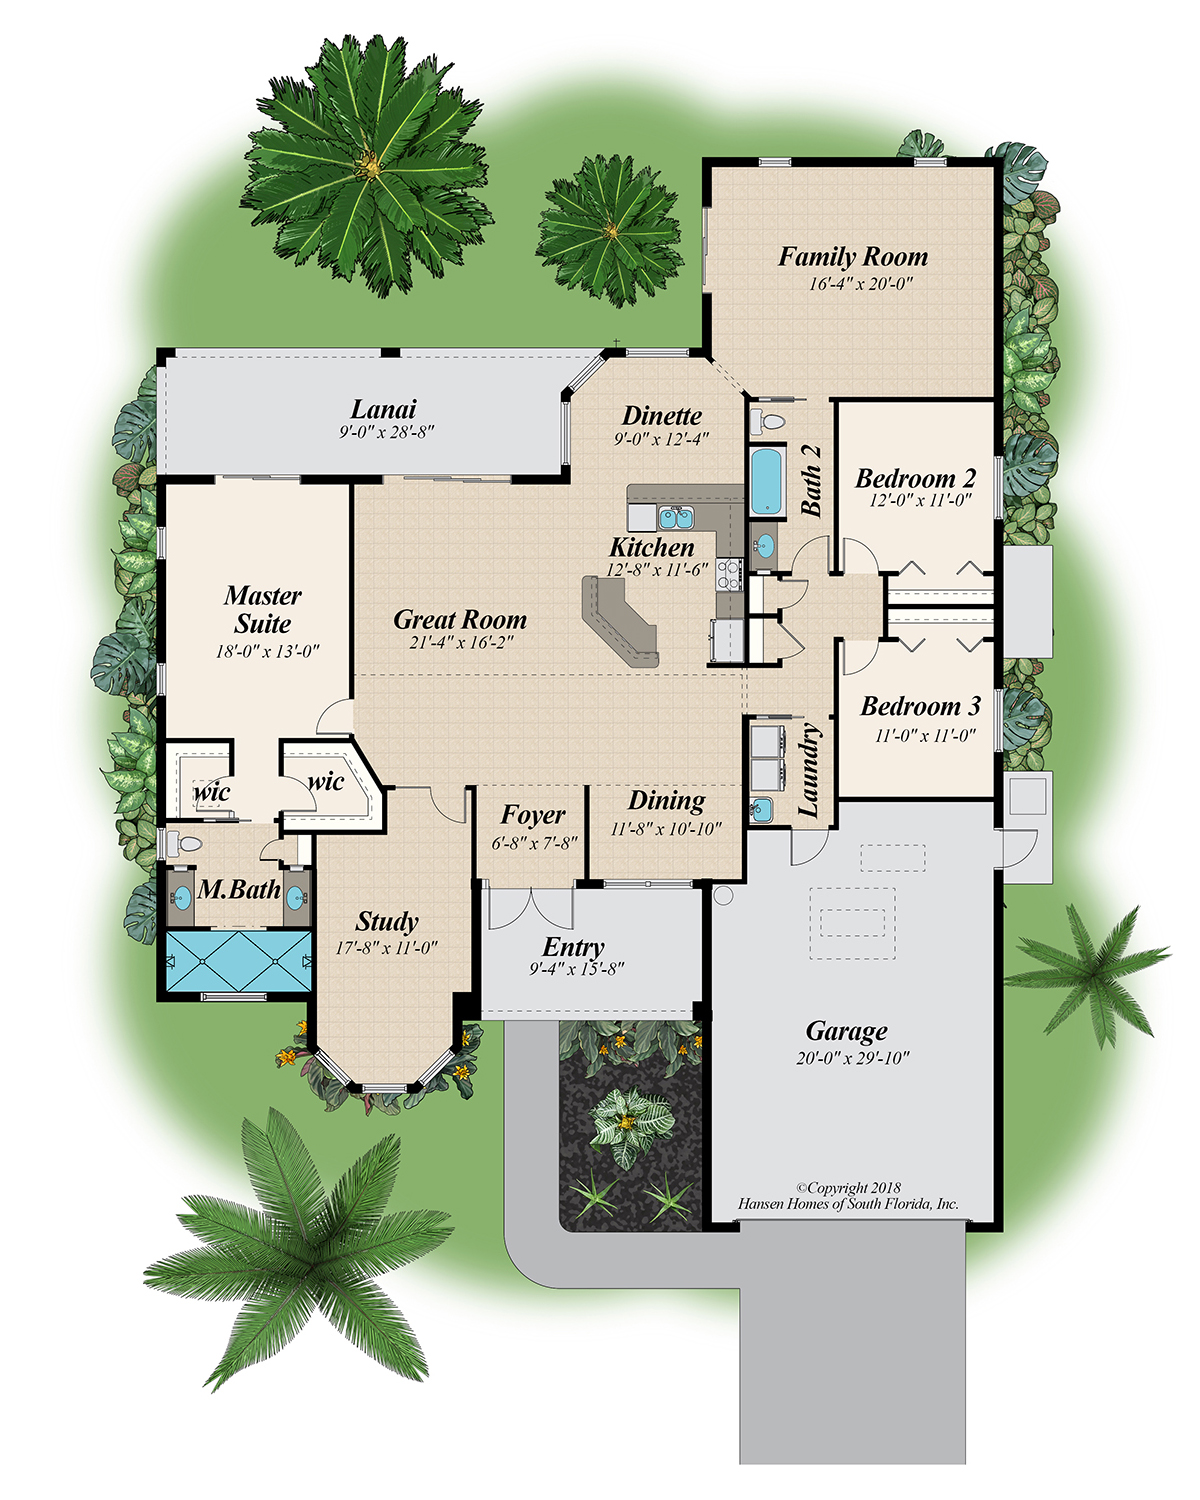 The Slater Family Room Home Plan Floor Plans